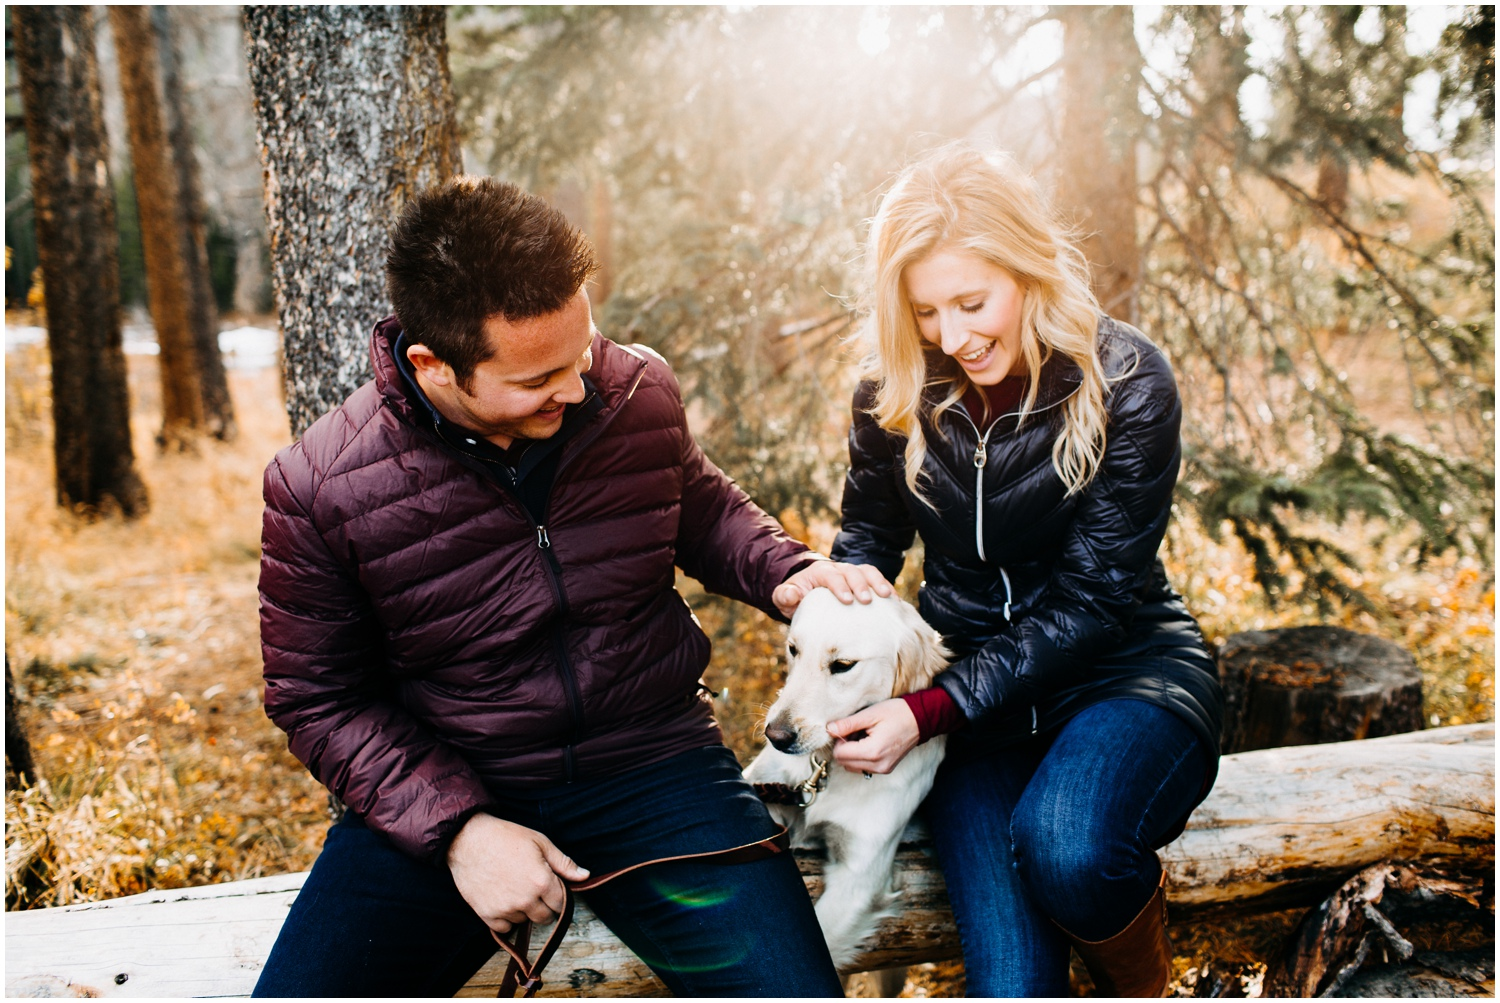 adventure_photo_engagement_session_vail_colorado_taylor_powers__0016.jpg